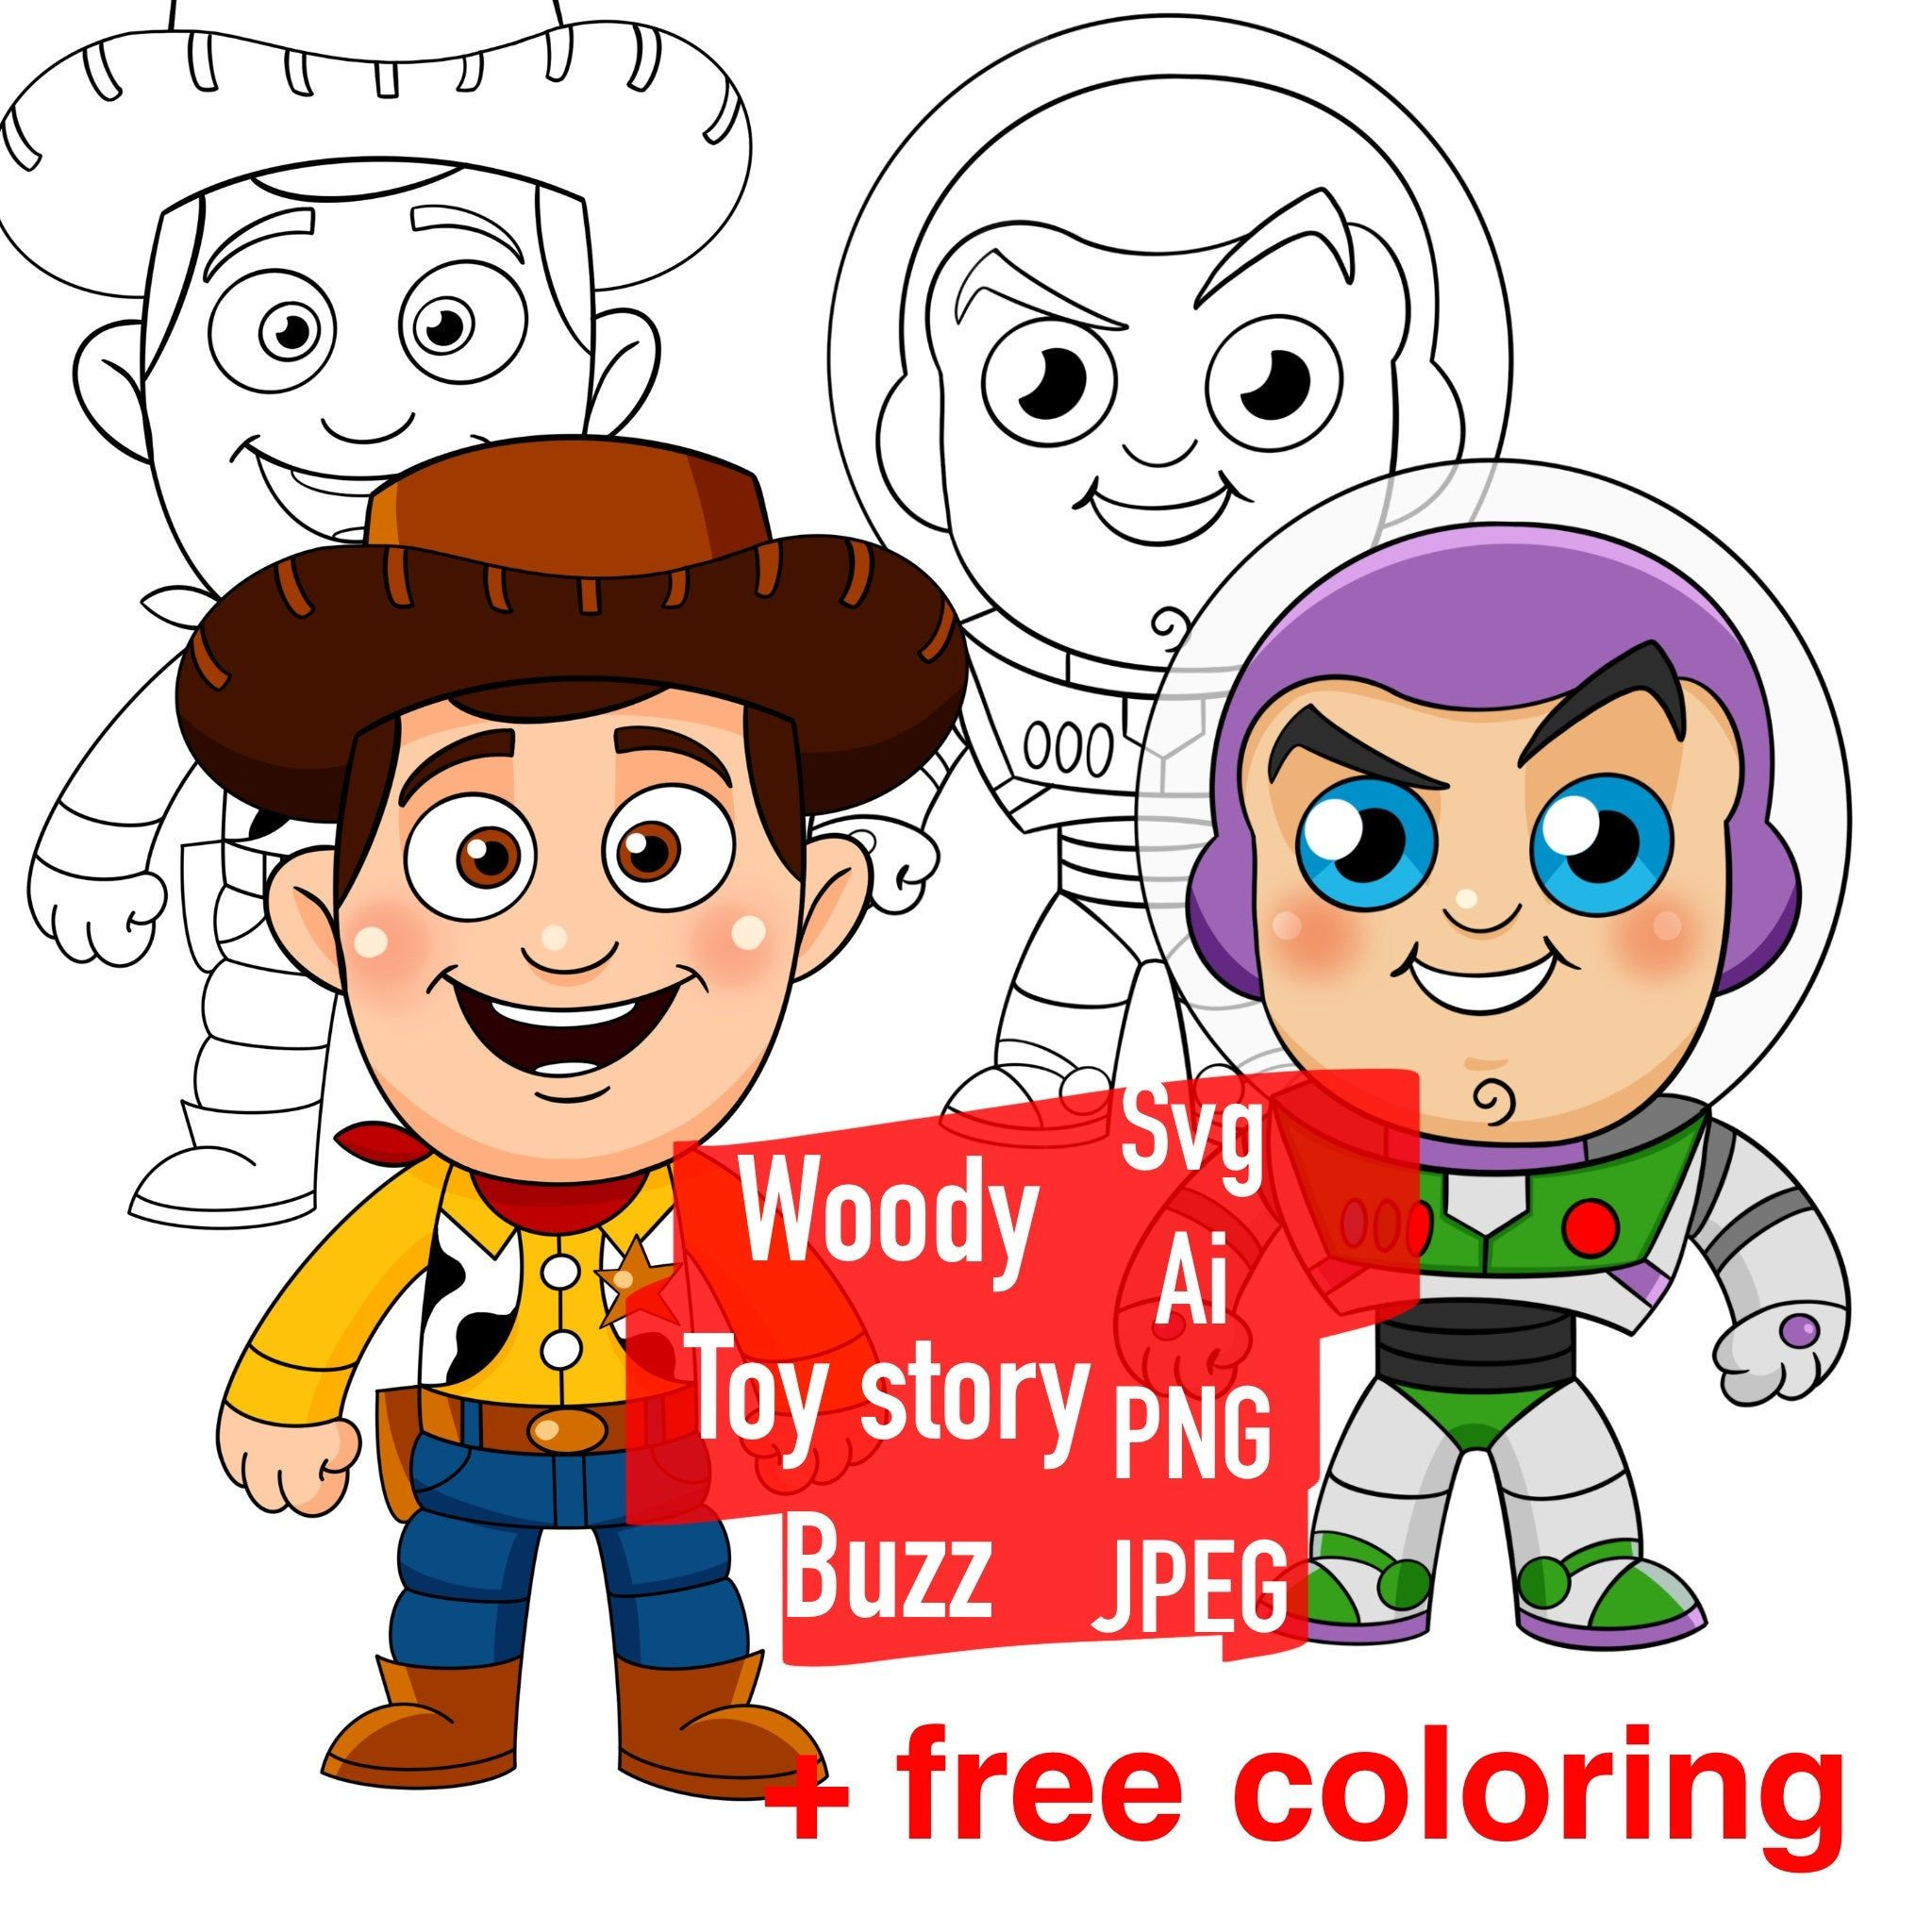 Woody Buzz Svg Clipart Cartoon Character Png Chibi Heroes Etsy In 2021 Woody And Buzz Toy Story Tattoo Woody Toy Story